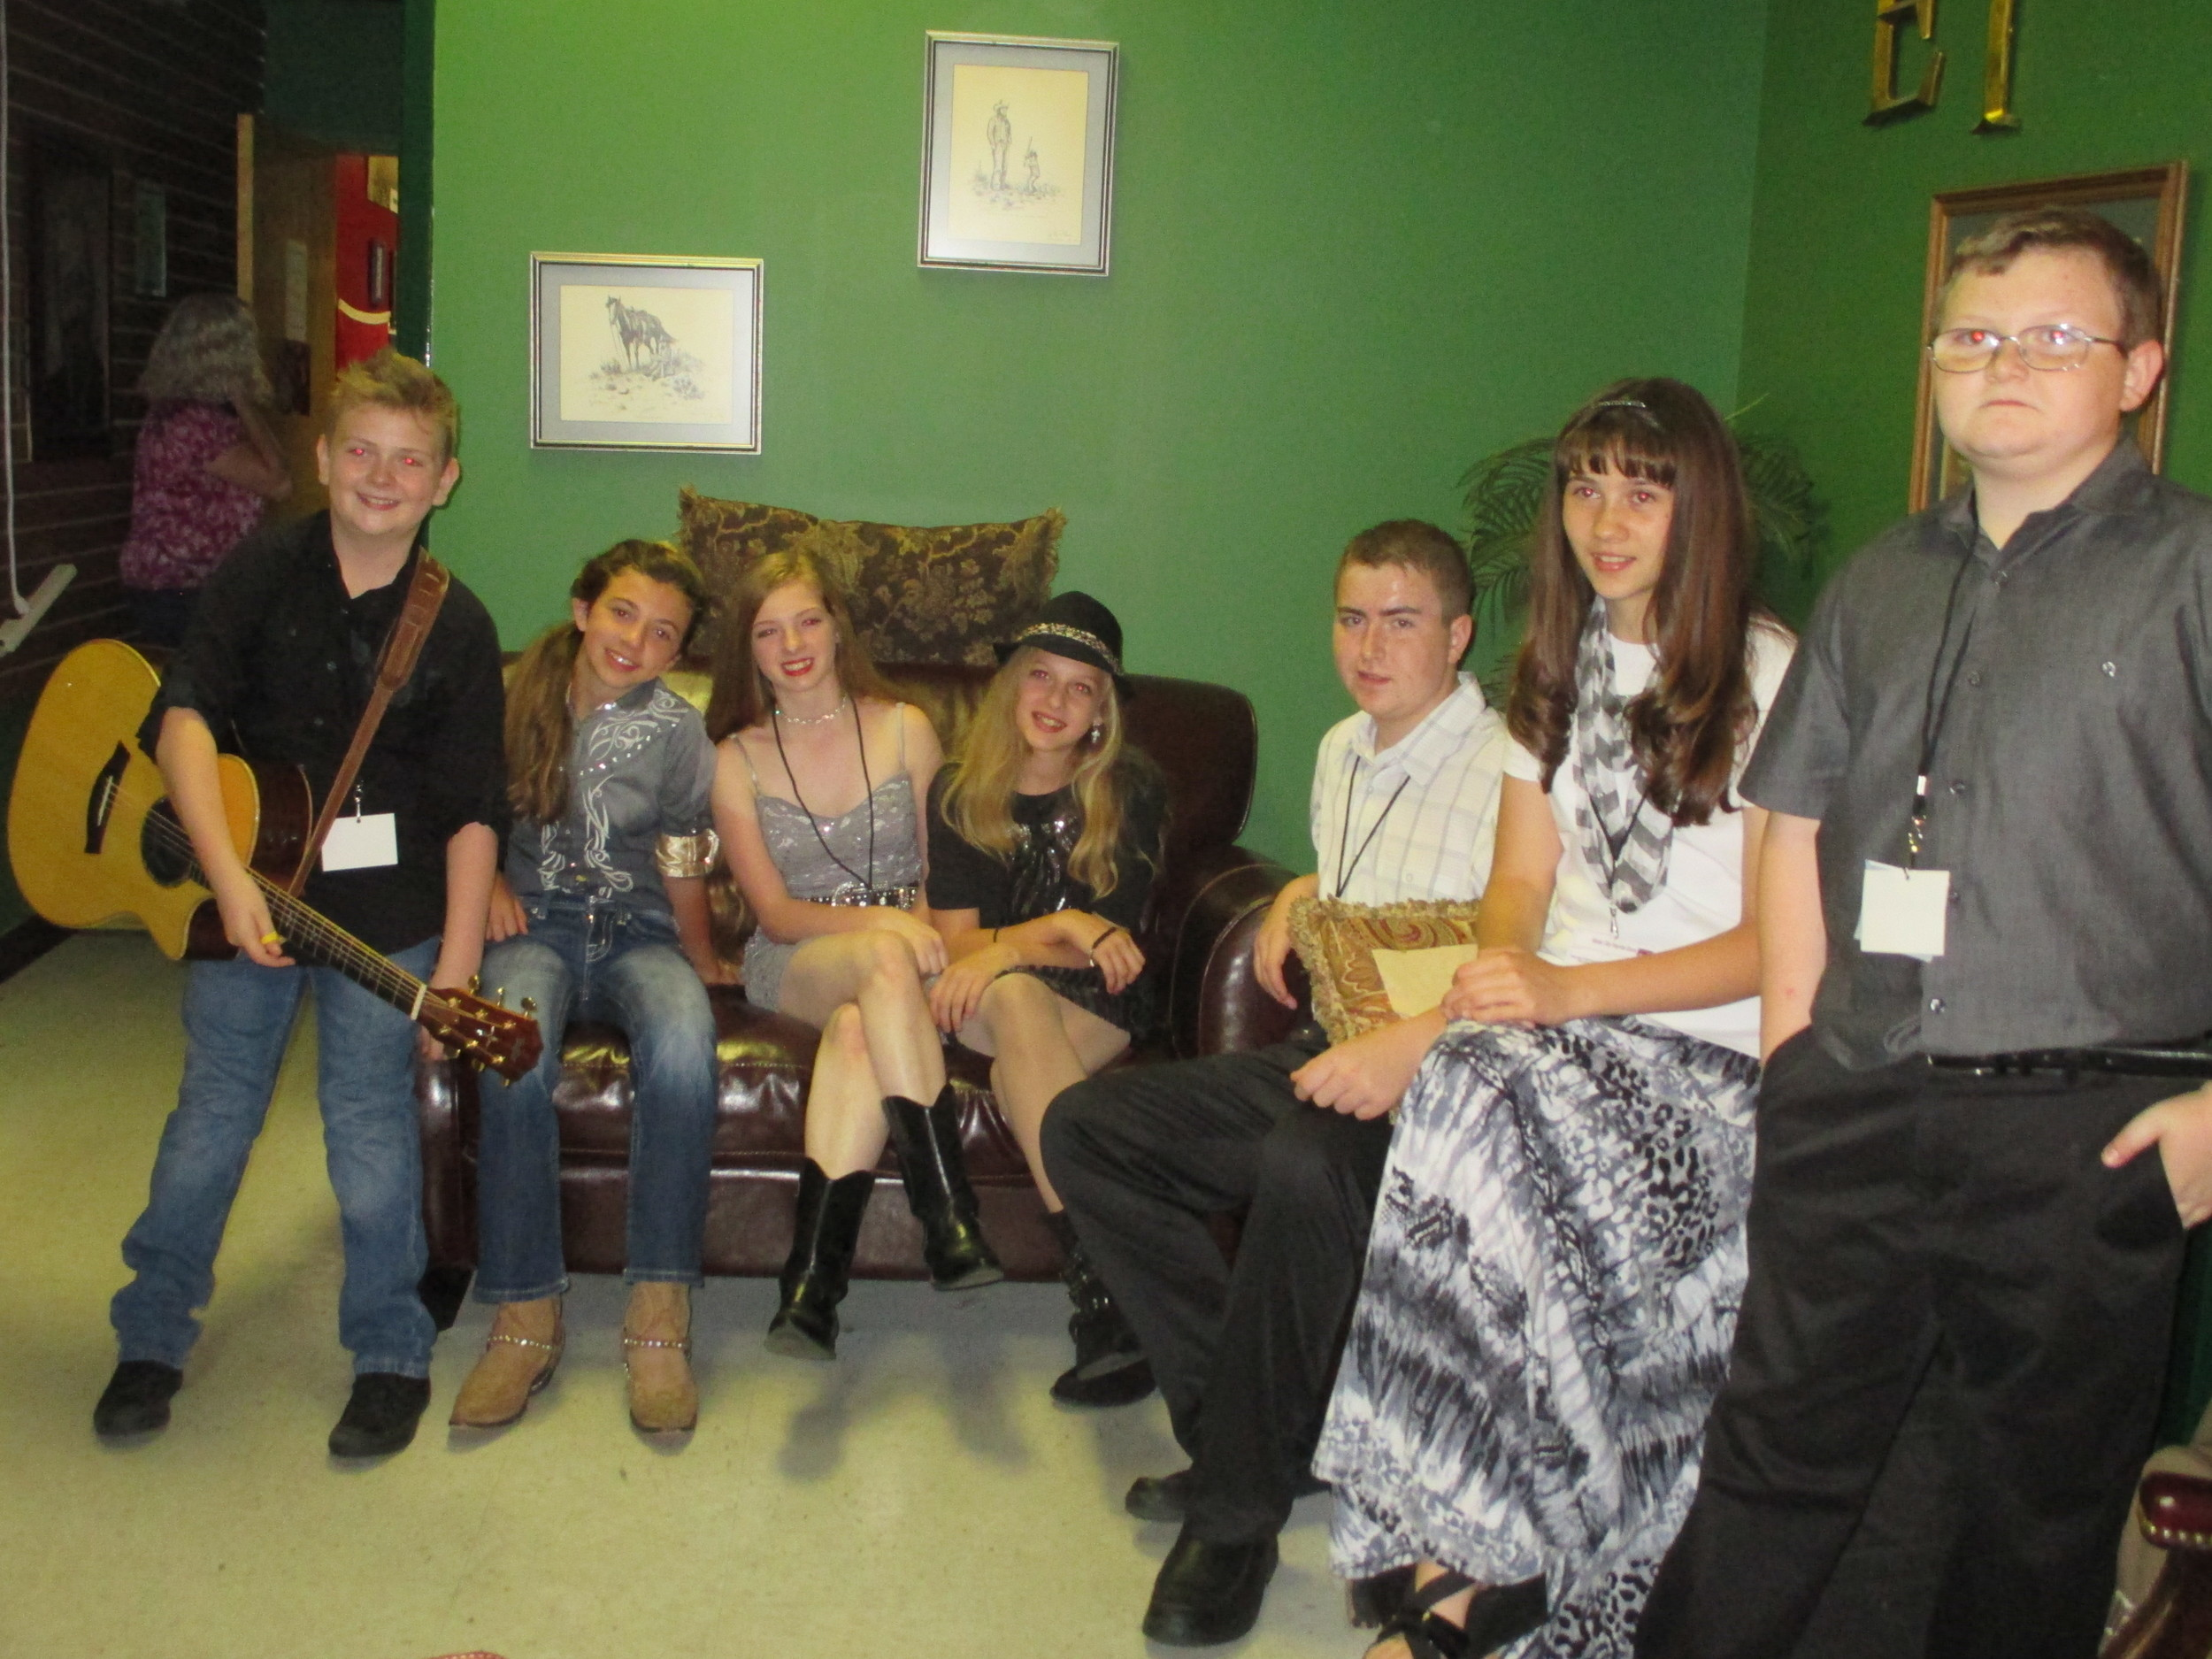 Meeting Some New Friends in the Green Room